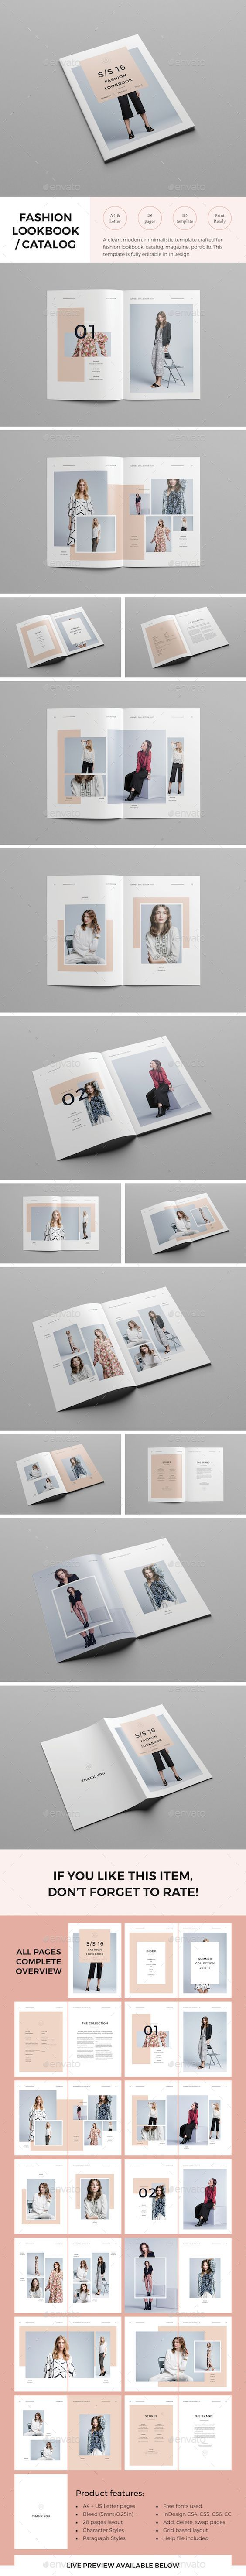 Lookbook Template InDesign INDD. Download here: http://graphicriver.net/item/lookbook-template/15315869?ref=ksioks: